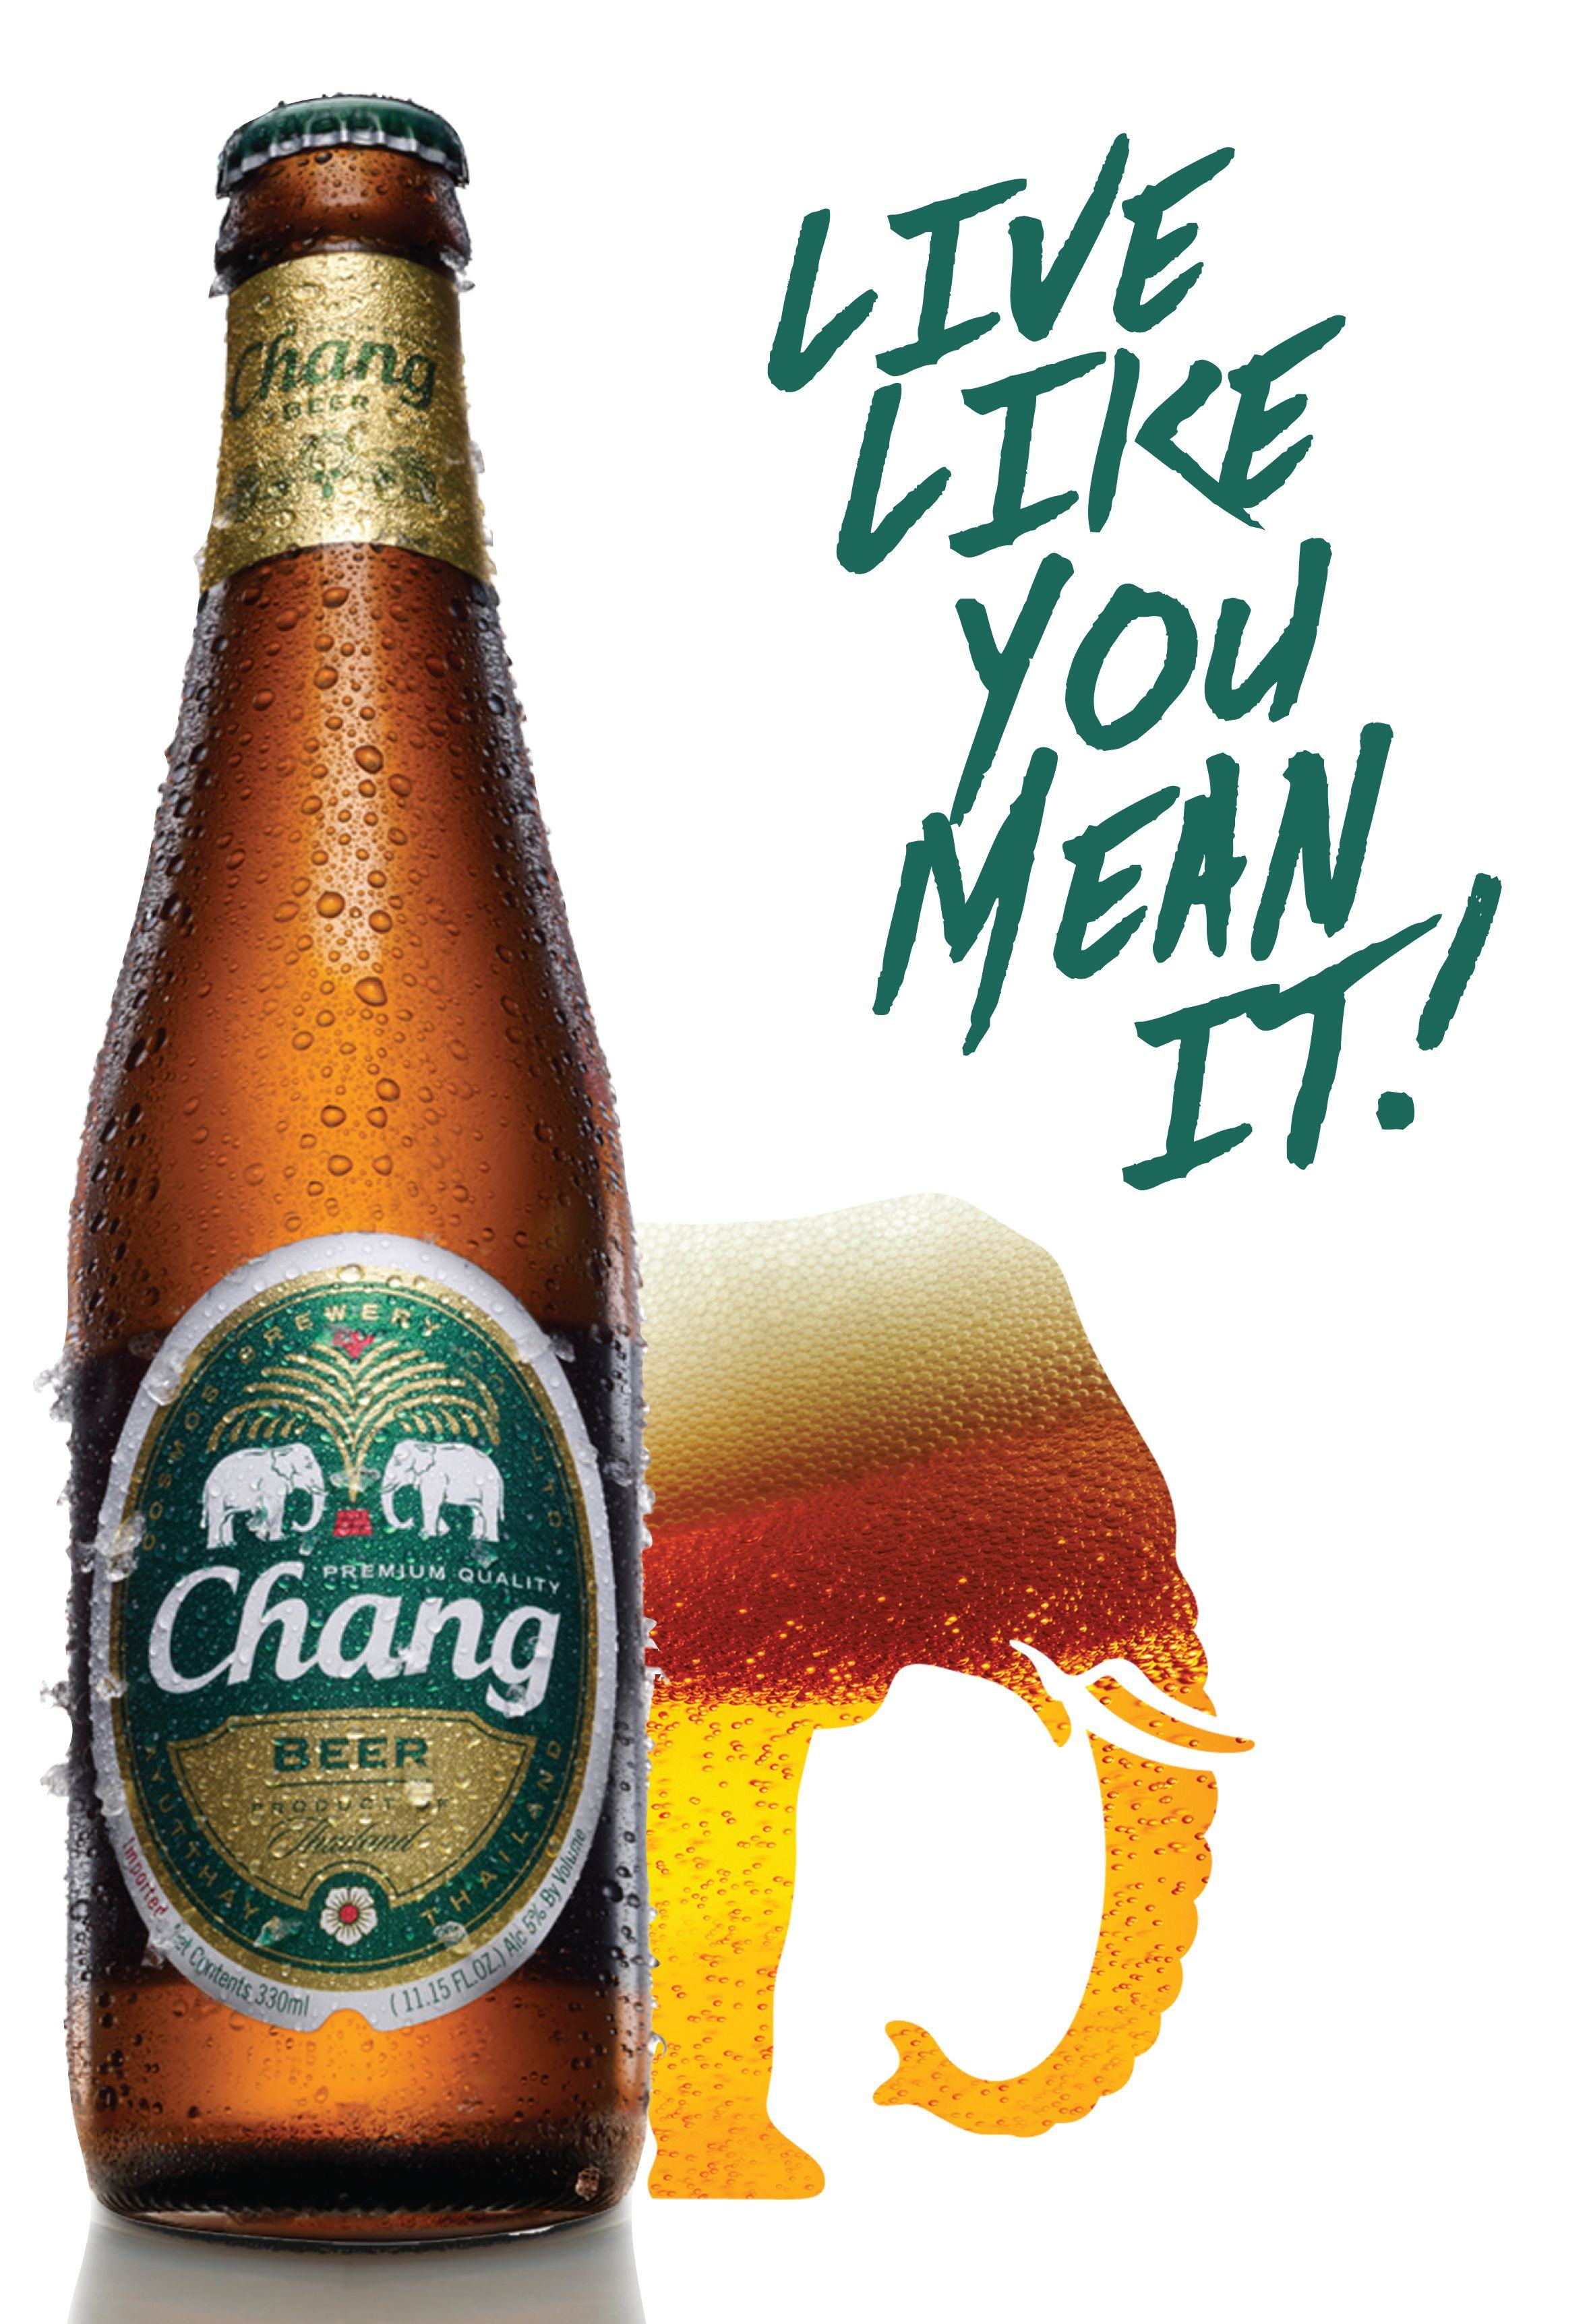 chang beer challenge penalty shootout